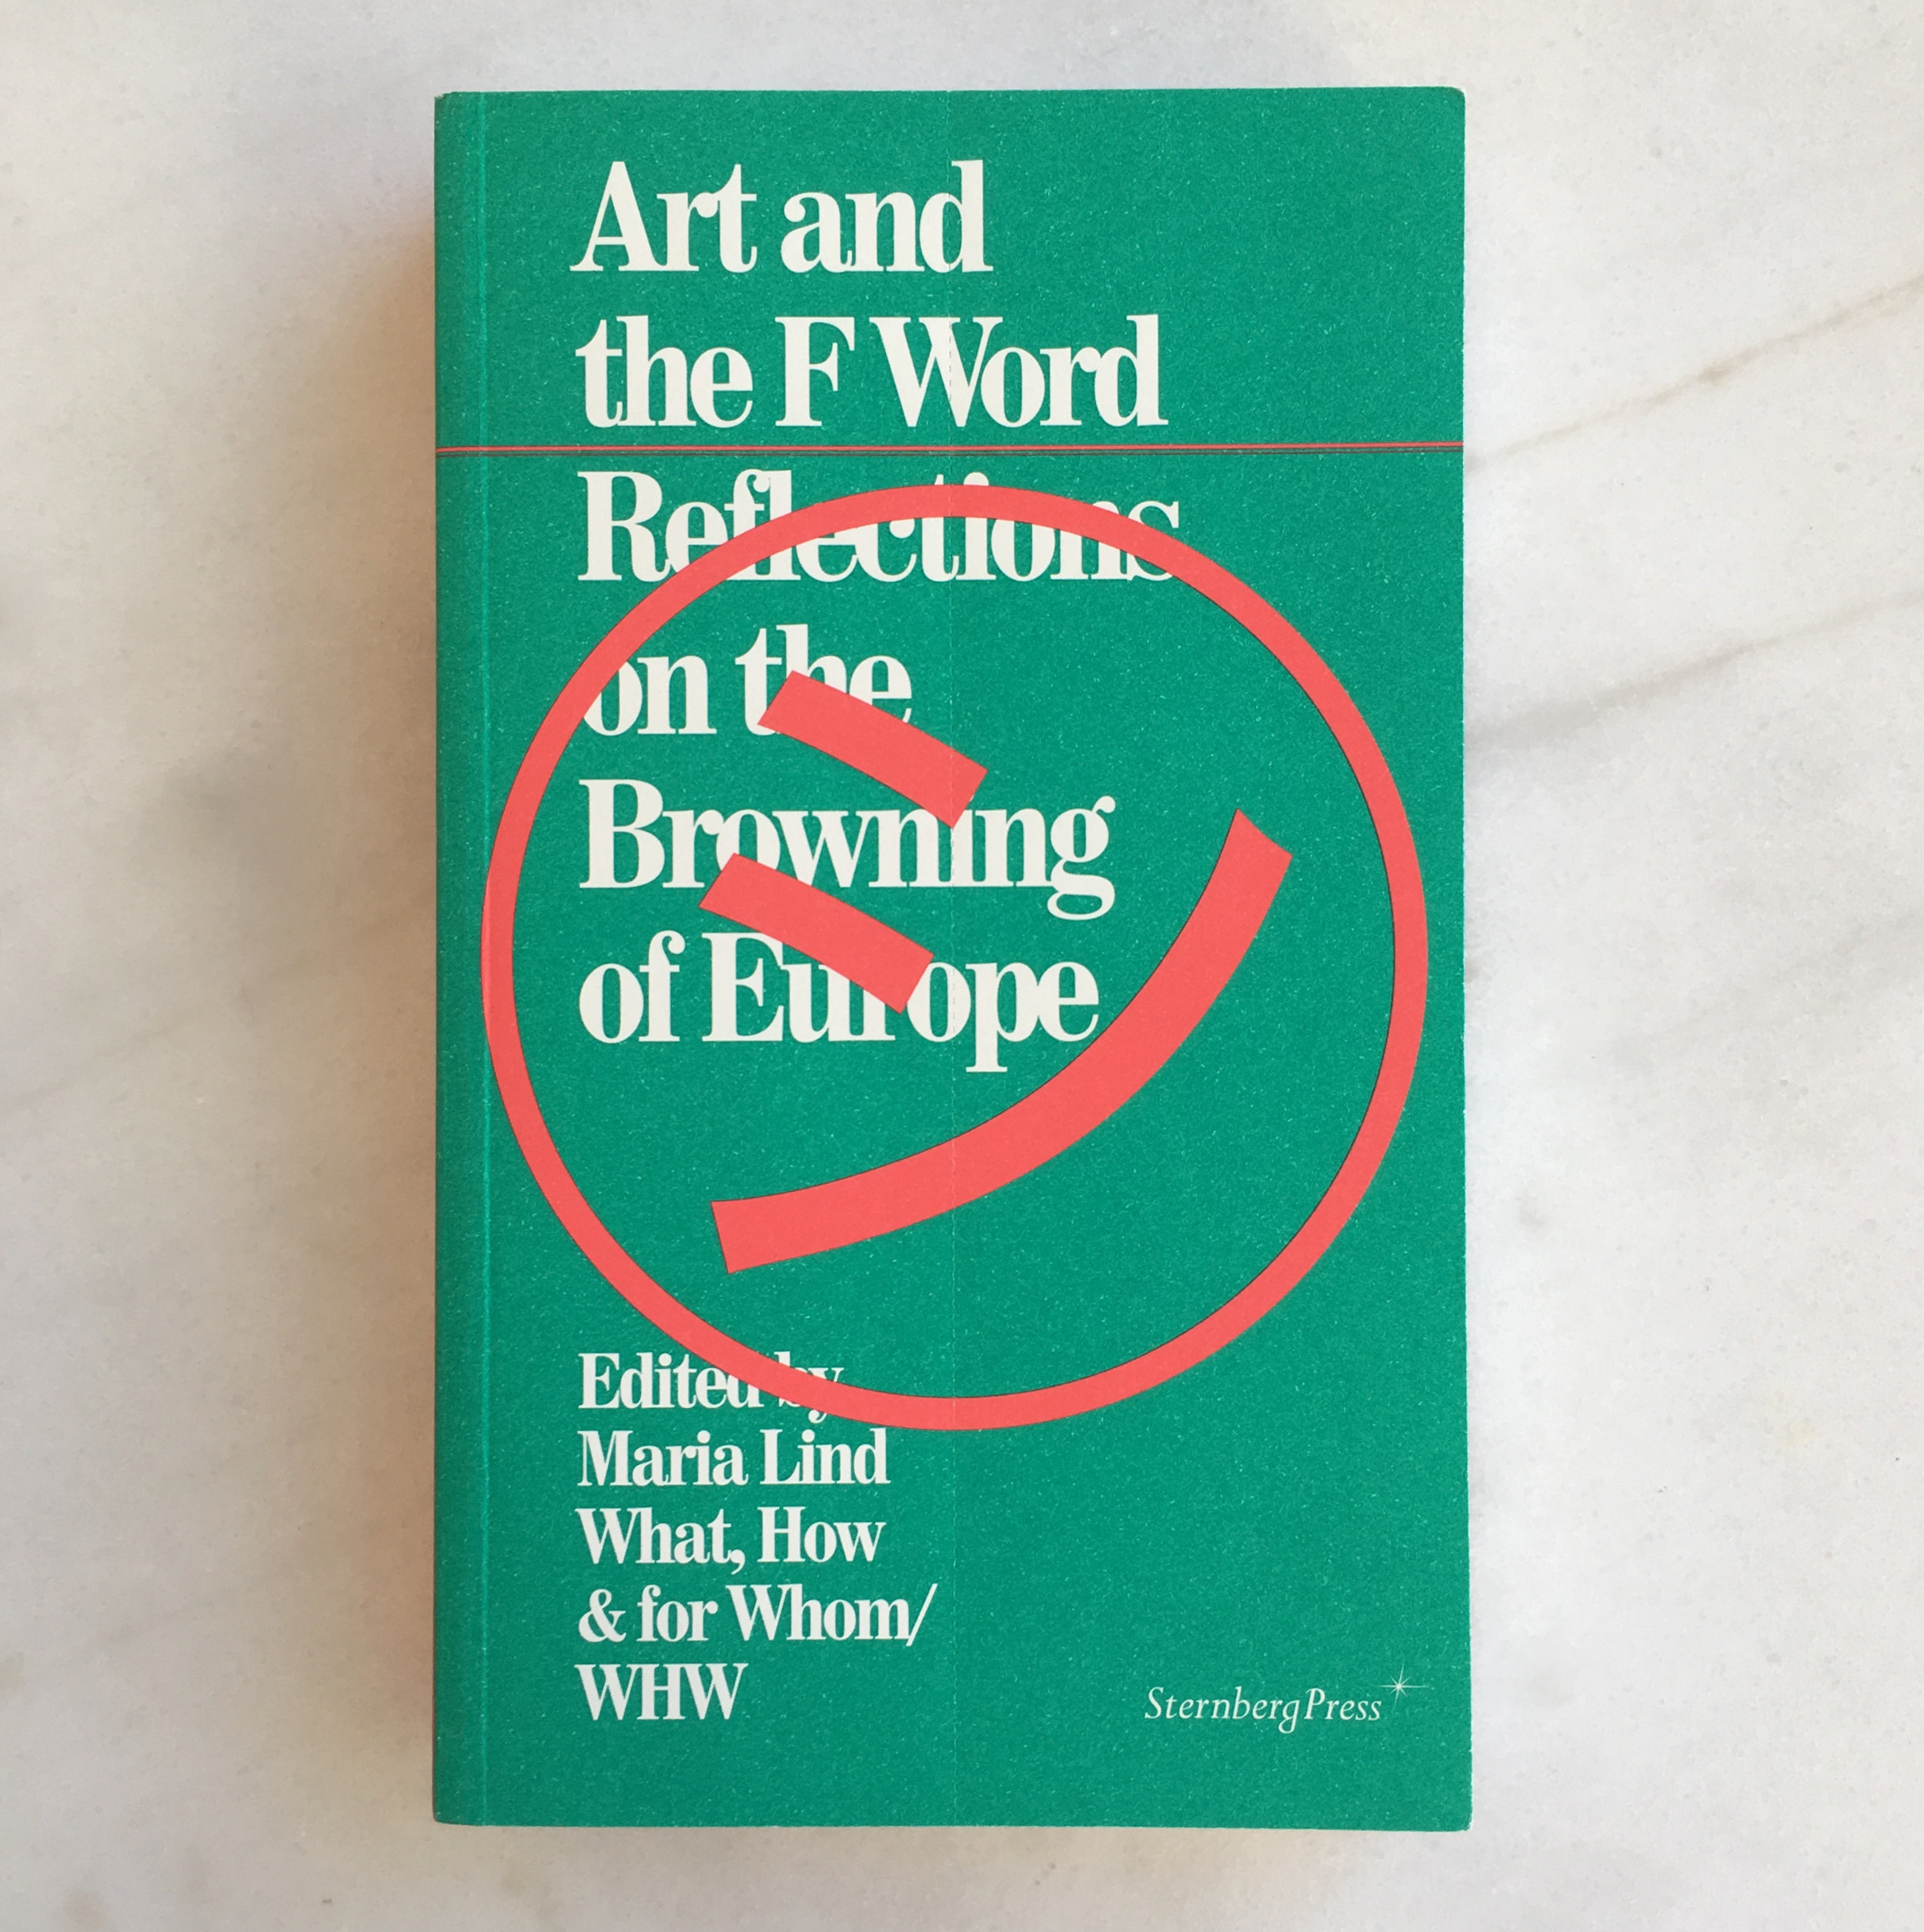 Art and the F Word: Reflections on the Browning of Europe , edited by Maria Lind and What, How & for Whom/WHW (Berlin: Sternberg and Stockholm: Tensta konsthall, 2014).